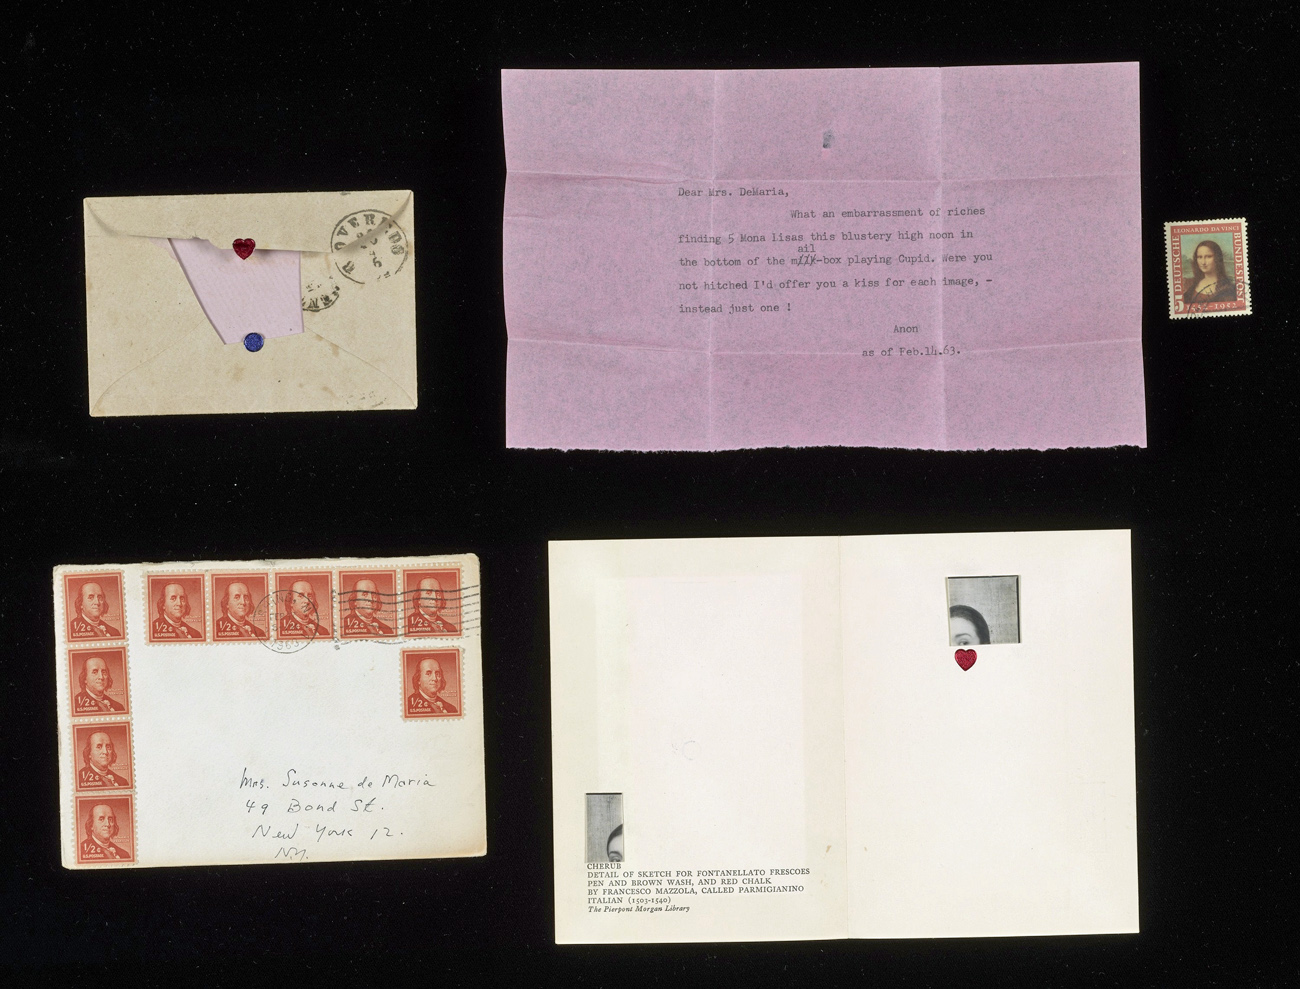 Items enclosed with Joseph Cornell's letter